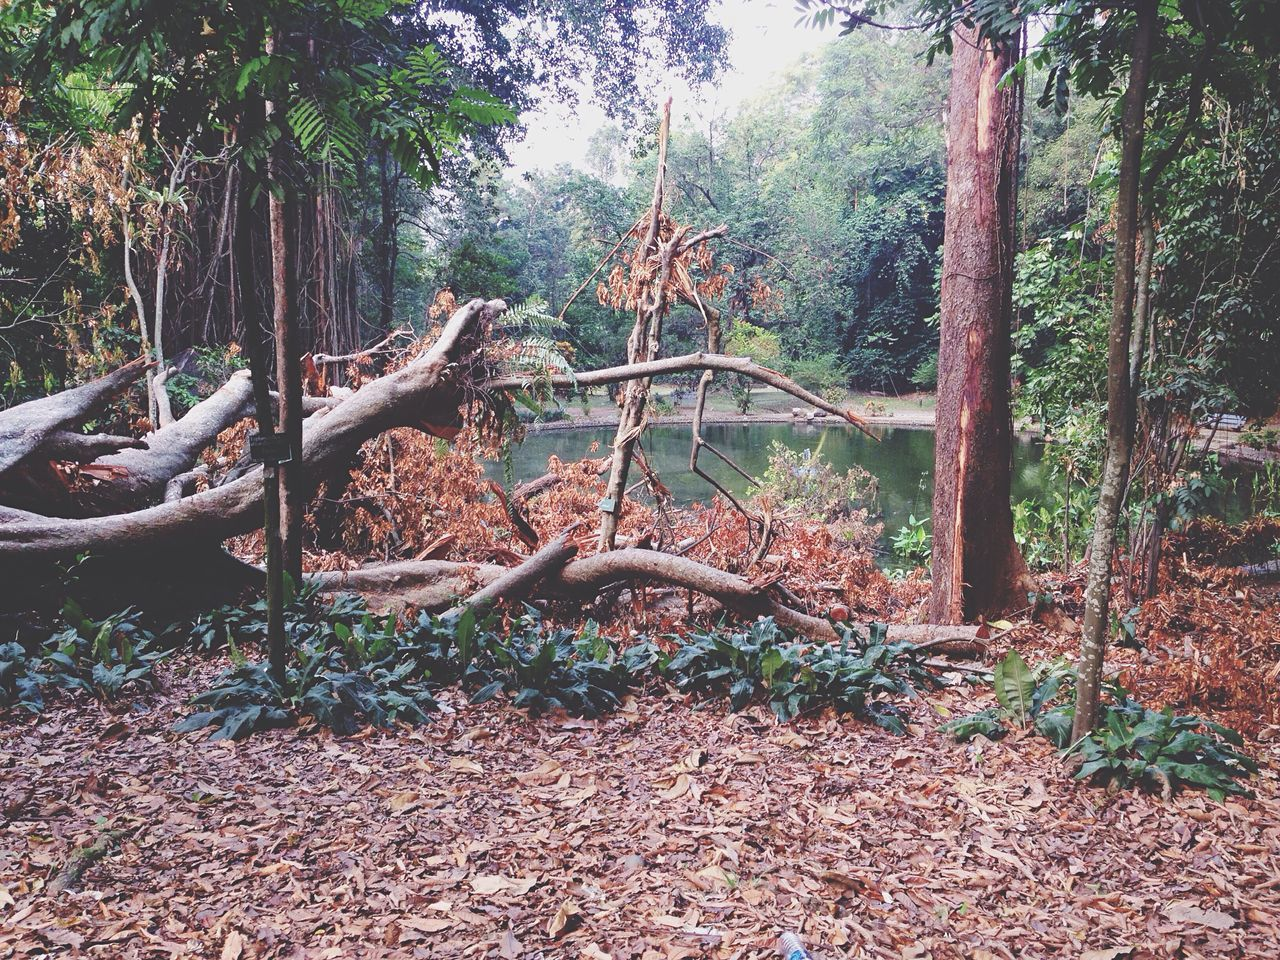 EyeEmNewHere Fallen Tree Tree Forest Nature Tranquility Tree Trunk Tranquil Scene Root Environment No People Scenics Outdoors Natural Disaster Day Bogor, Indonesia Botanical Gardens